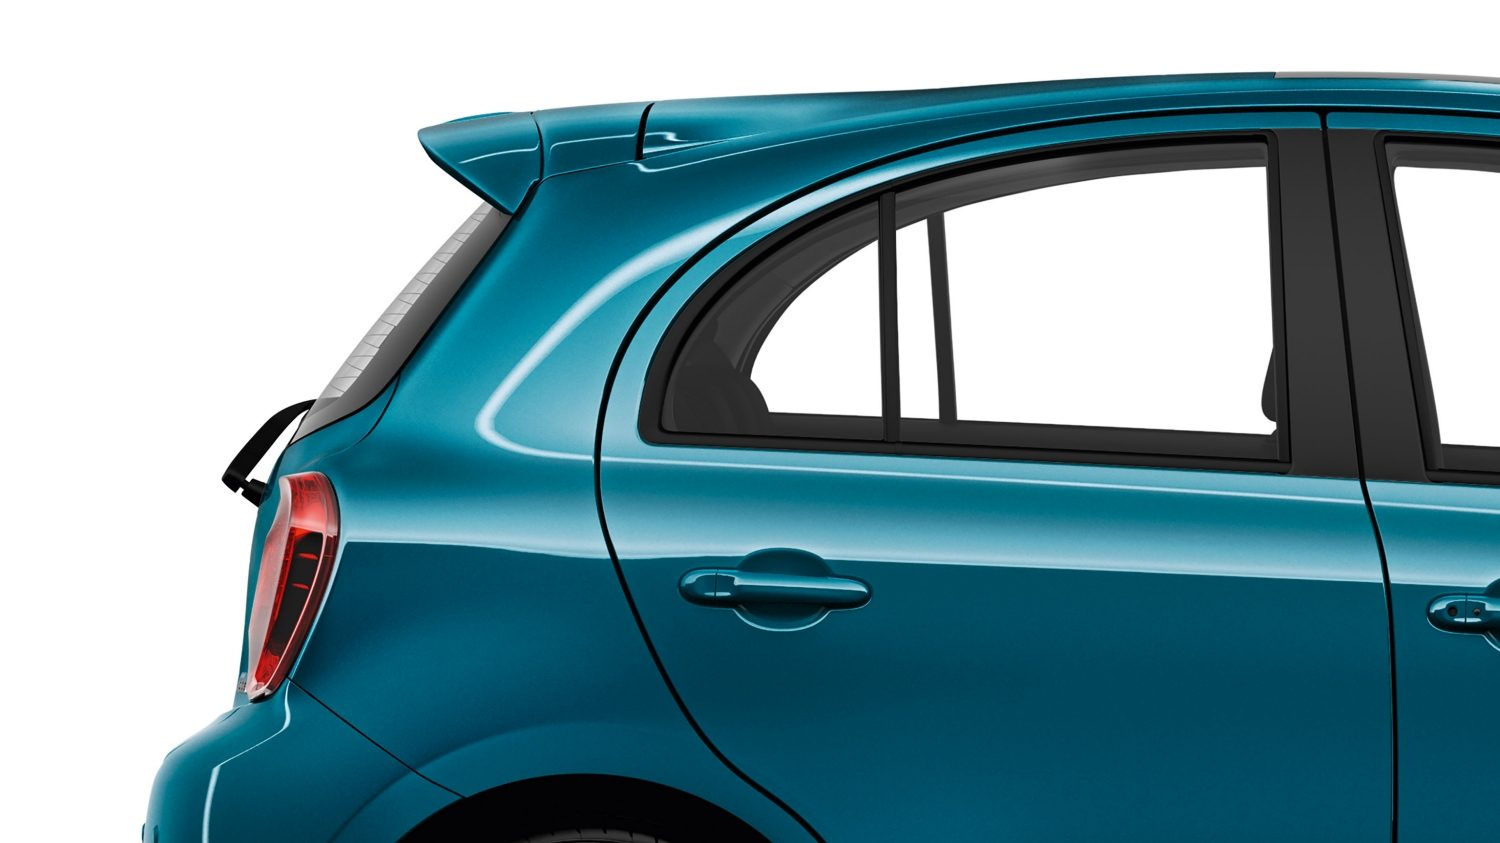 Nissan Micra Pacific Blue – Tagspoiler bagest